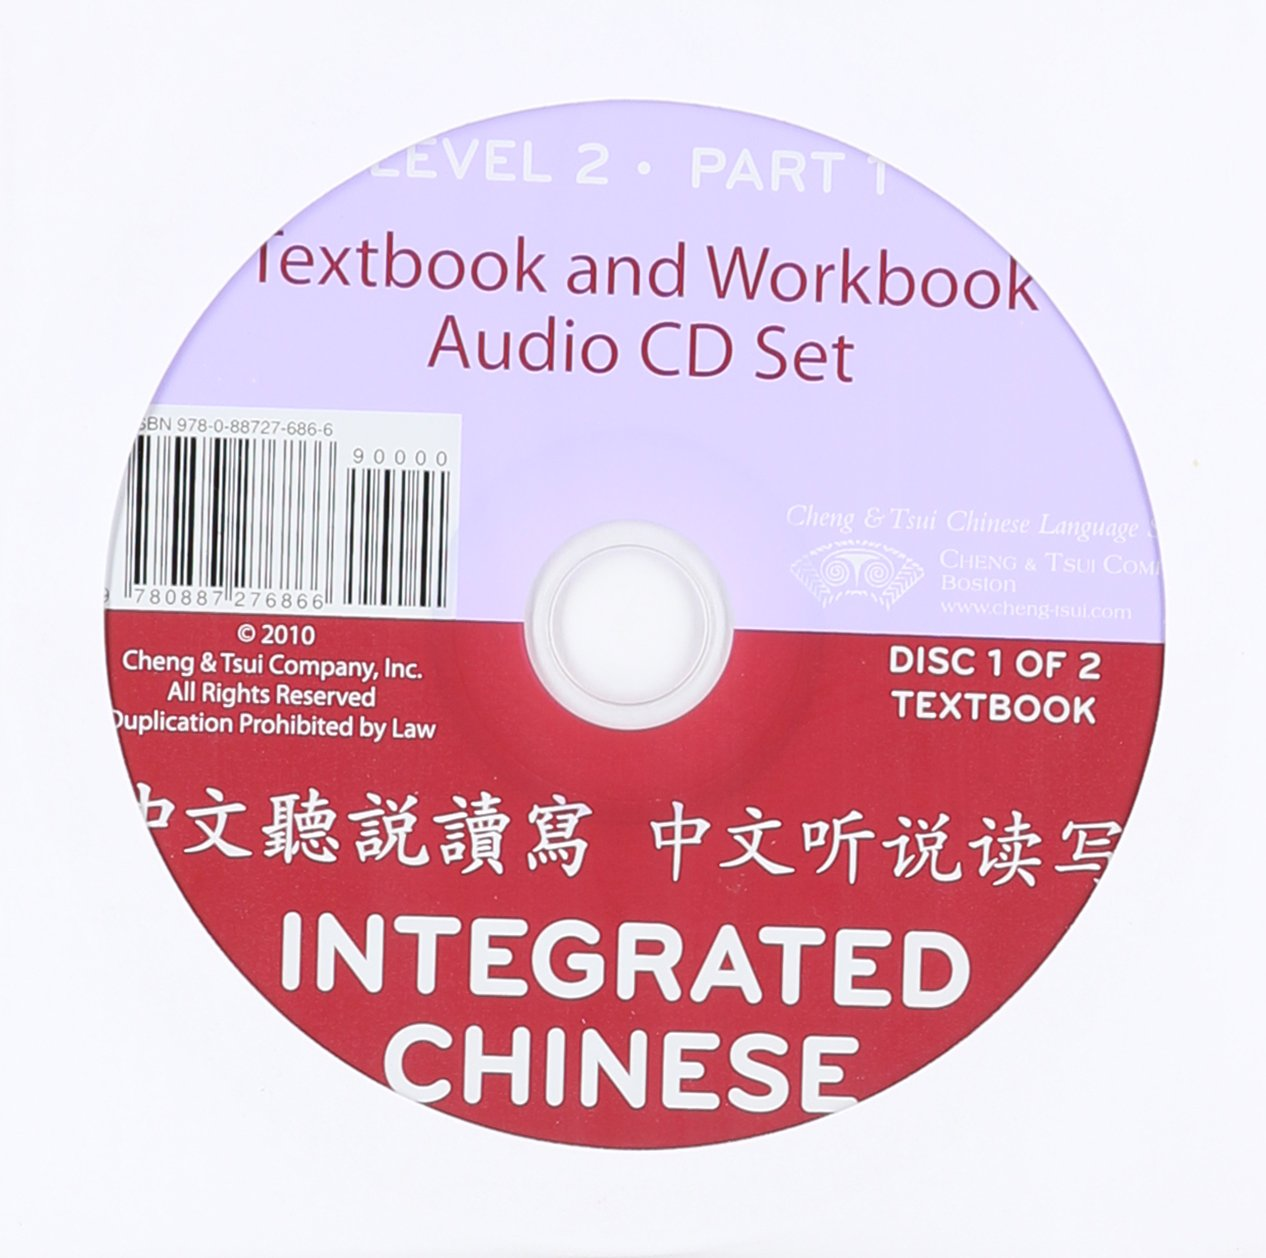 Integrated Chinese: Audio CDs Level 2, Part 1 (3rd Edition) (Chinese and English Edition)